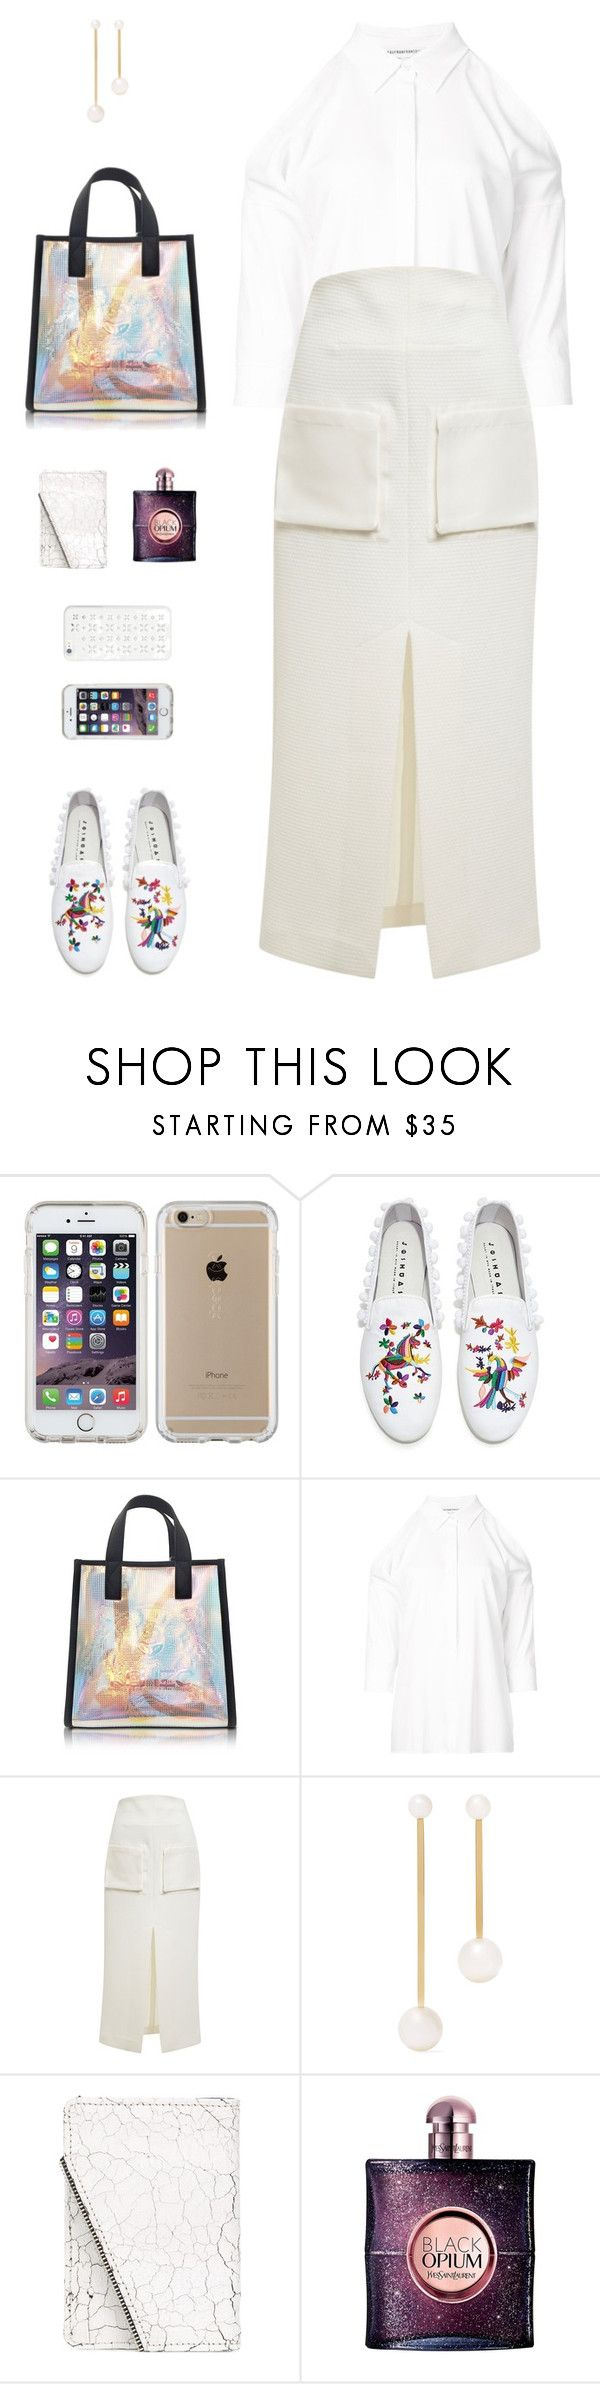 """""""Joshua Sanders Rainbow Embroidery Pom Pom Flats"""" by sol4ange ❤ liked on Polyvore featuring Speck, Joshua's, Kenzo, KaufmanFranco, E L L E R Y, Sophie Bille Brahe, South Lane, Yves Saint Laurent and MICHAEL Michael Kors"""